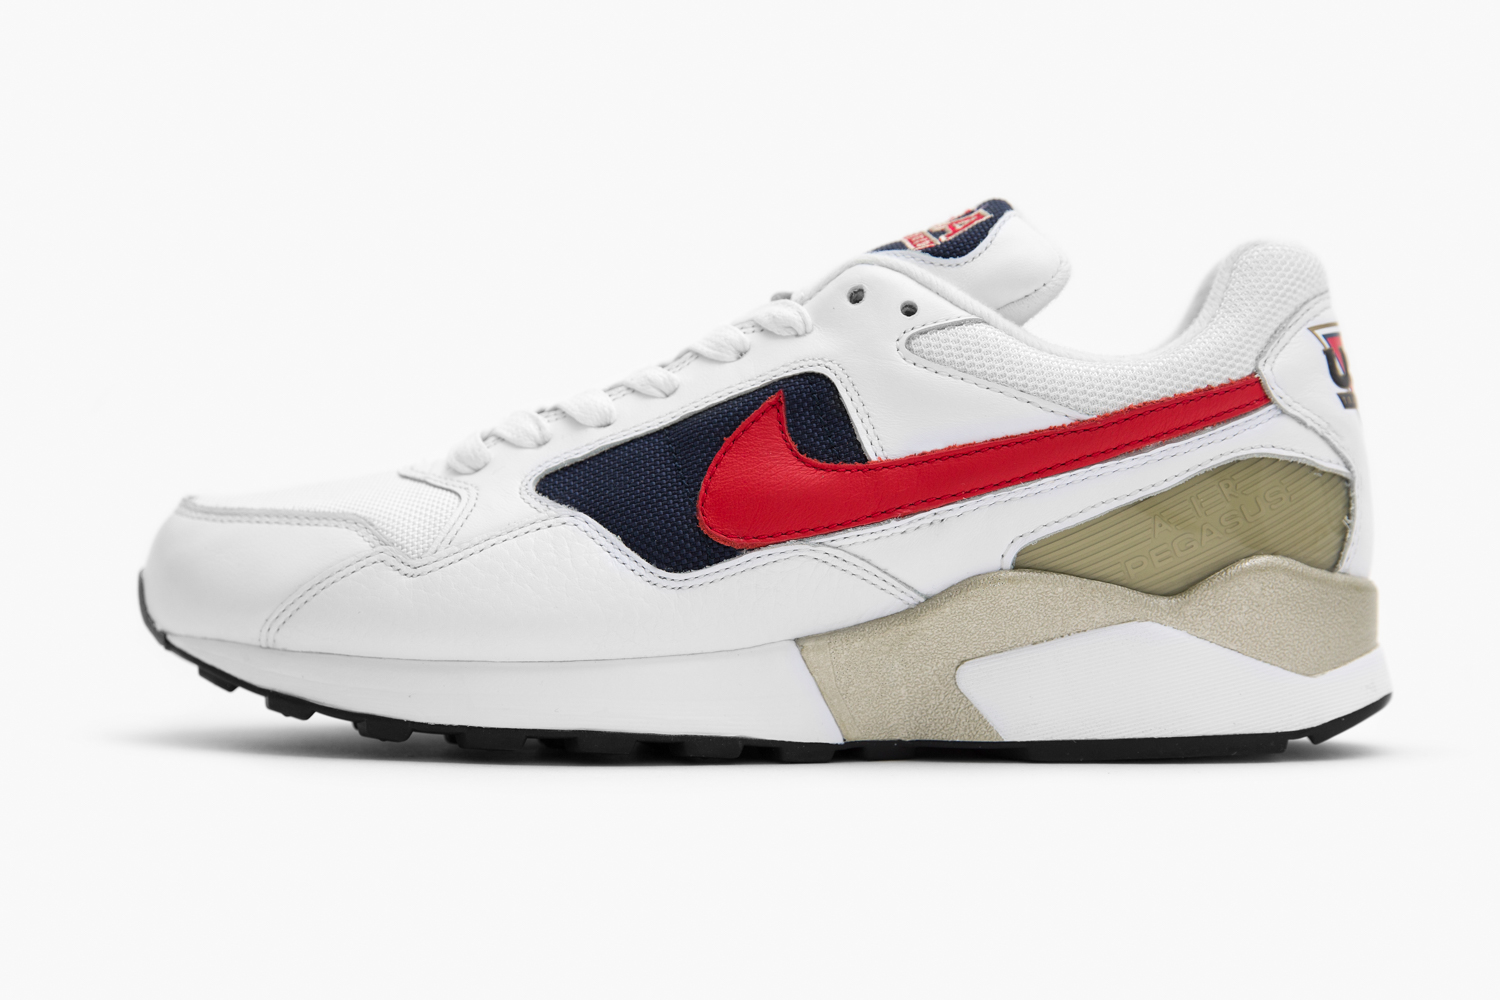 503c3813cf Nike_the_and_now_olympic_pack_presto_pegasus_Flyknit_classic_BW_size-5_  Nike_the_and_now_olympic_pack_presto_pegasus_Flyknit_classic_BW_size-8 ...